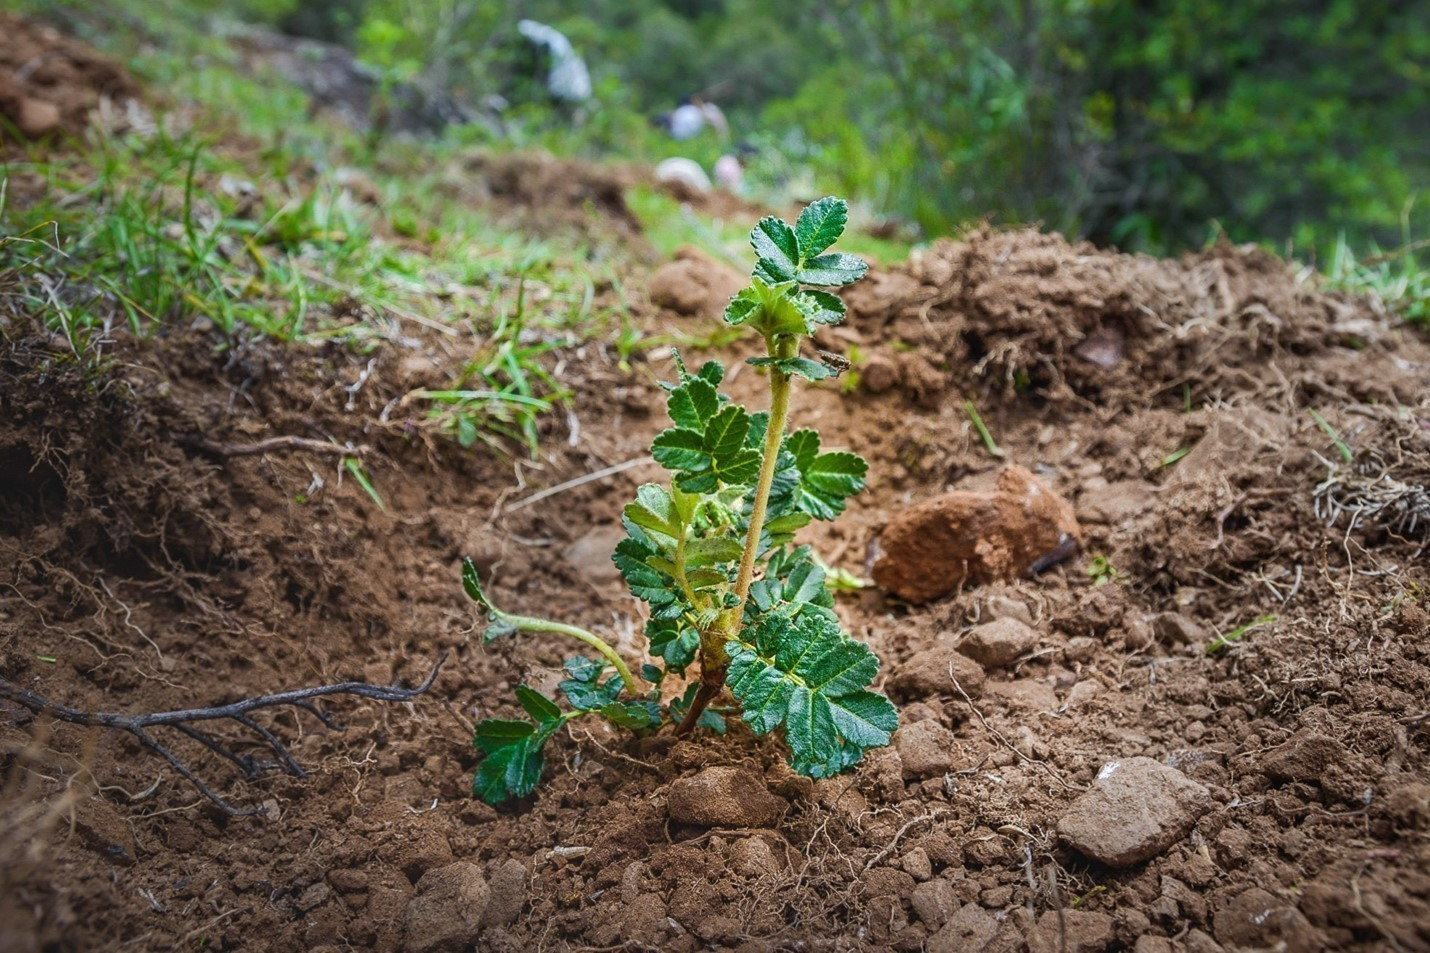 A Polylepis seedling taking root in the soil of the Peruvian Andes.